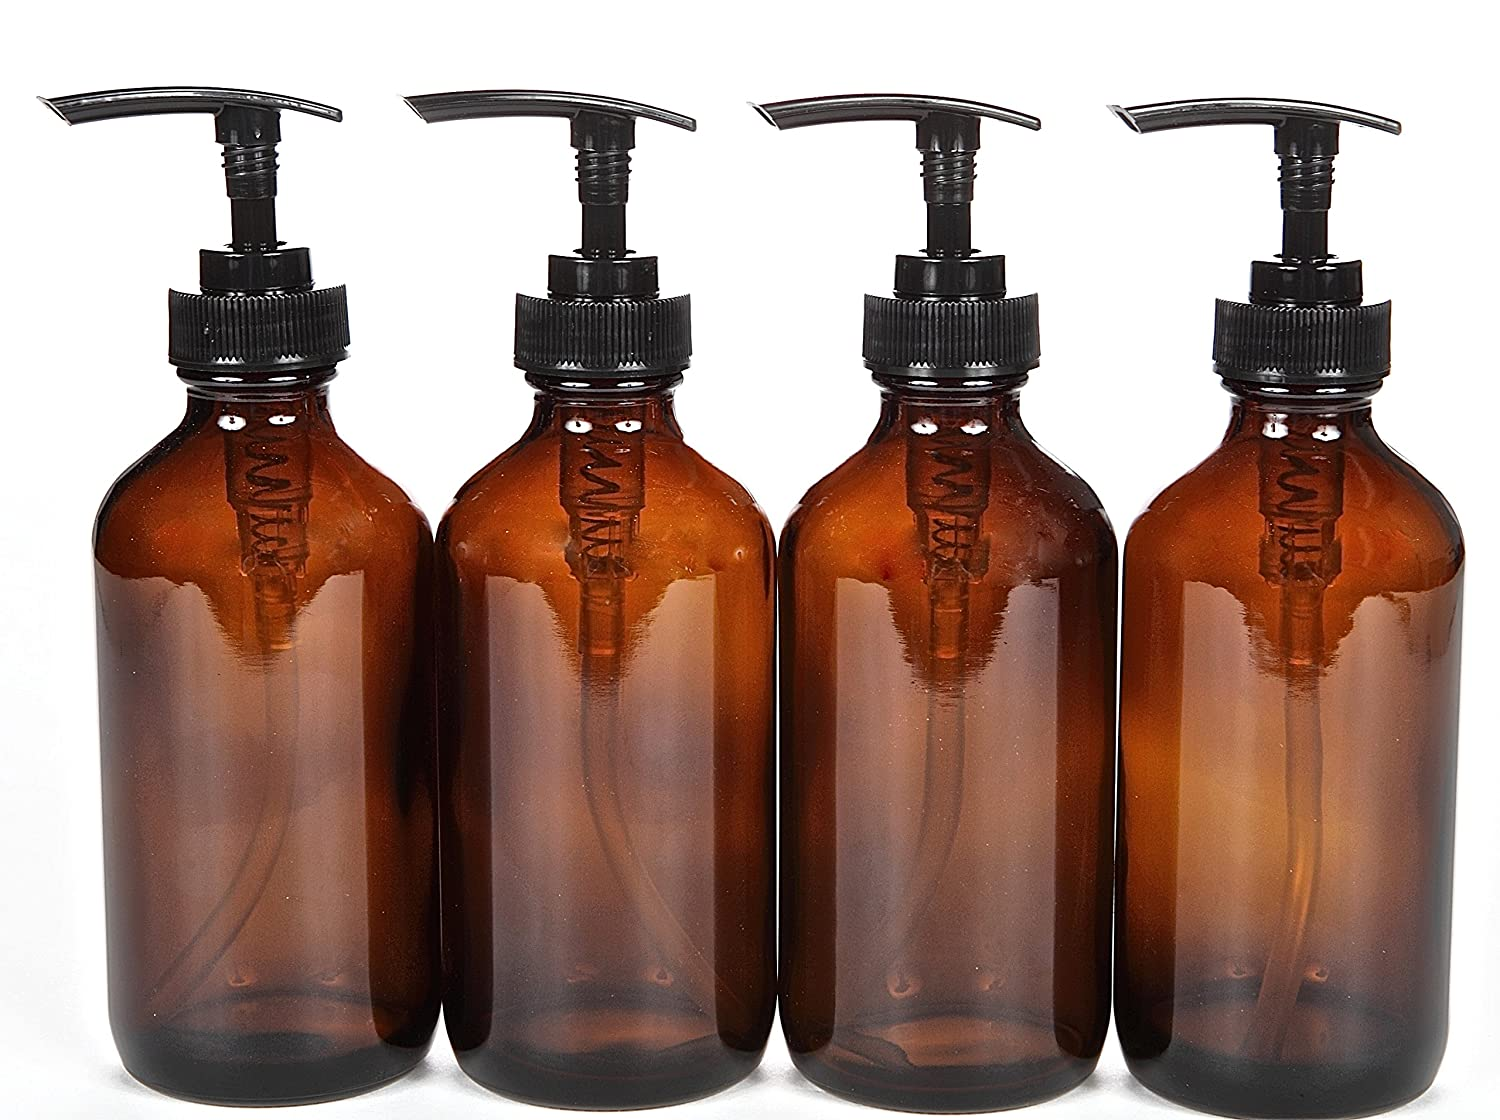 Vivaplex, 4, Large, 8 oz, Empty, Amber Glass Bottles with Black Lotion Pumps PSC Products